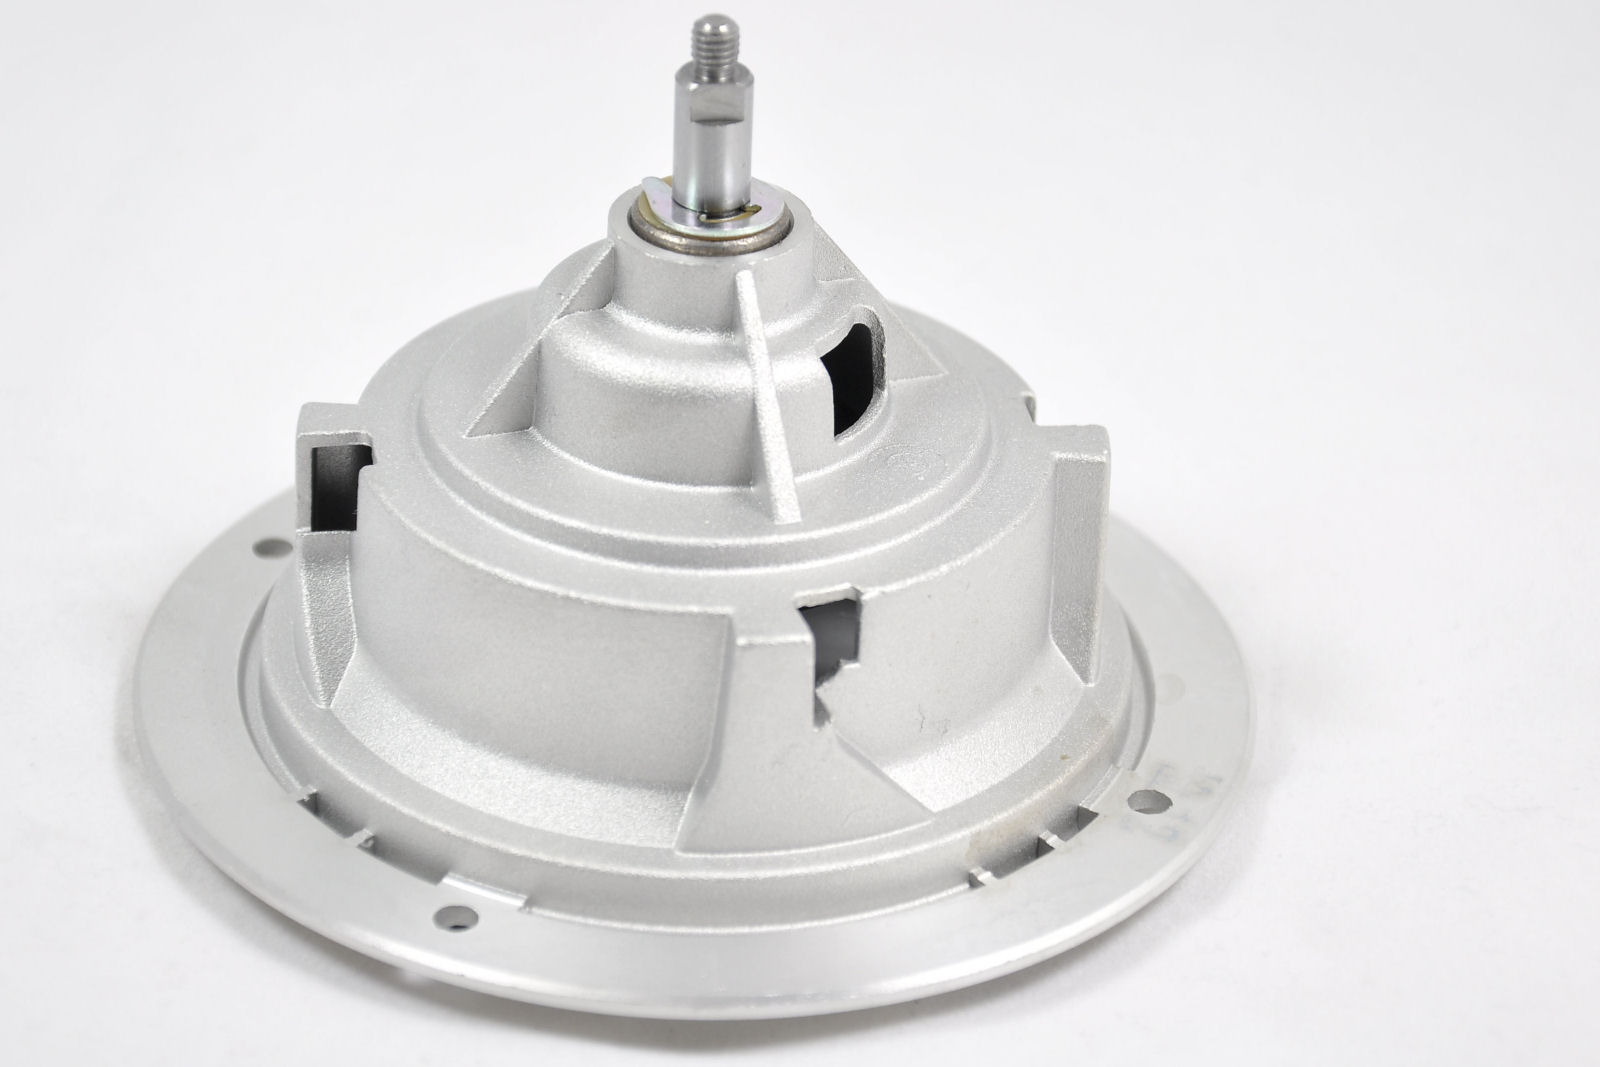 Base assembly for Panasonic Breadmaker [PAN.BRE.ADE98E165]